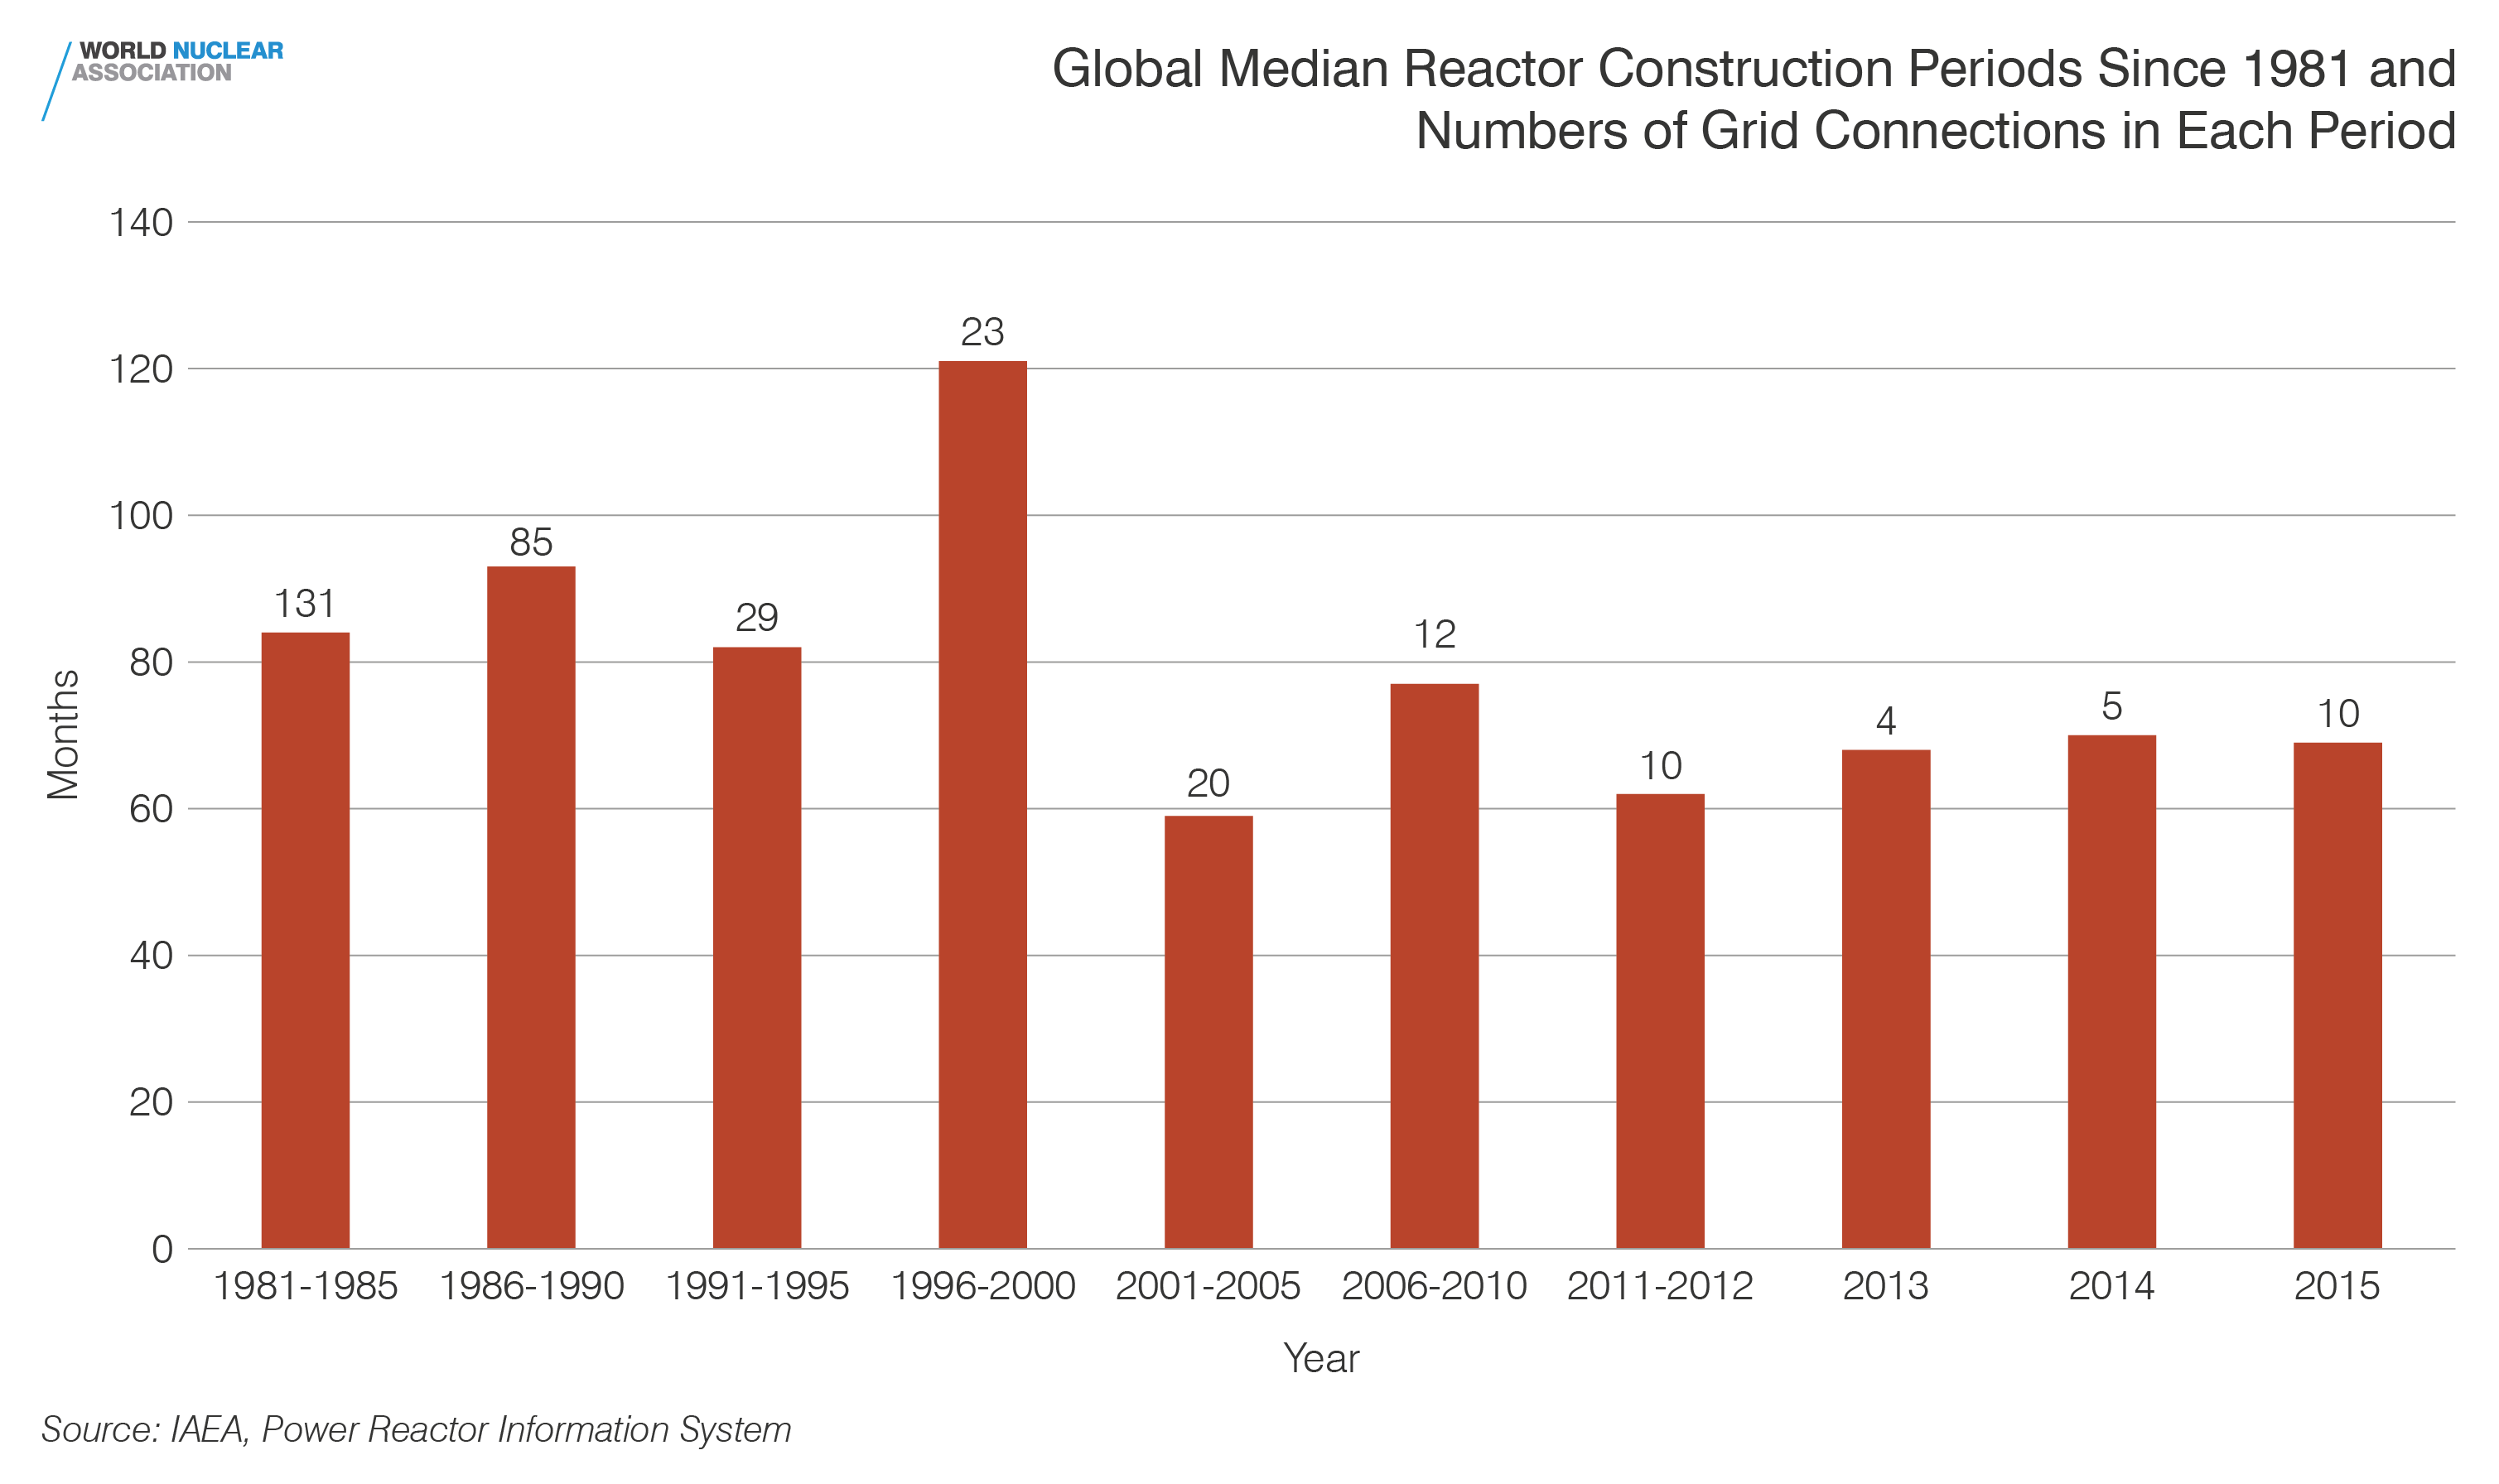 Global median reactor construction periods since 1981